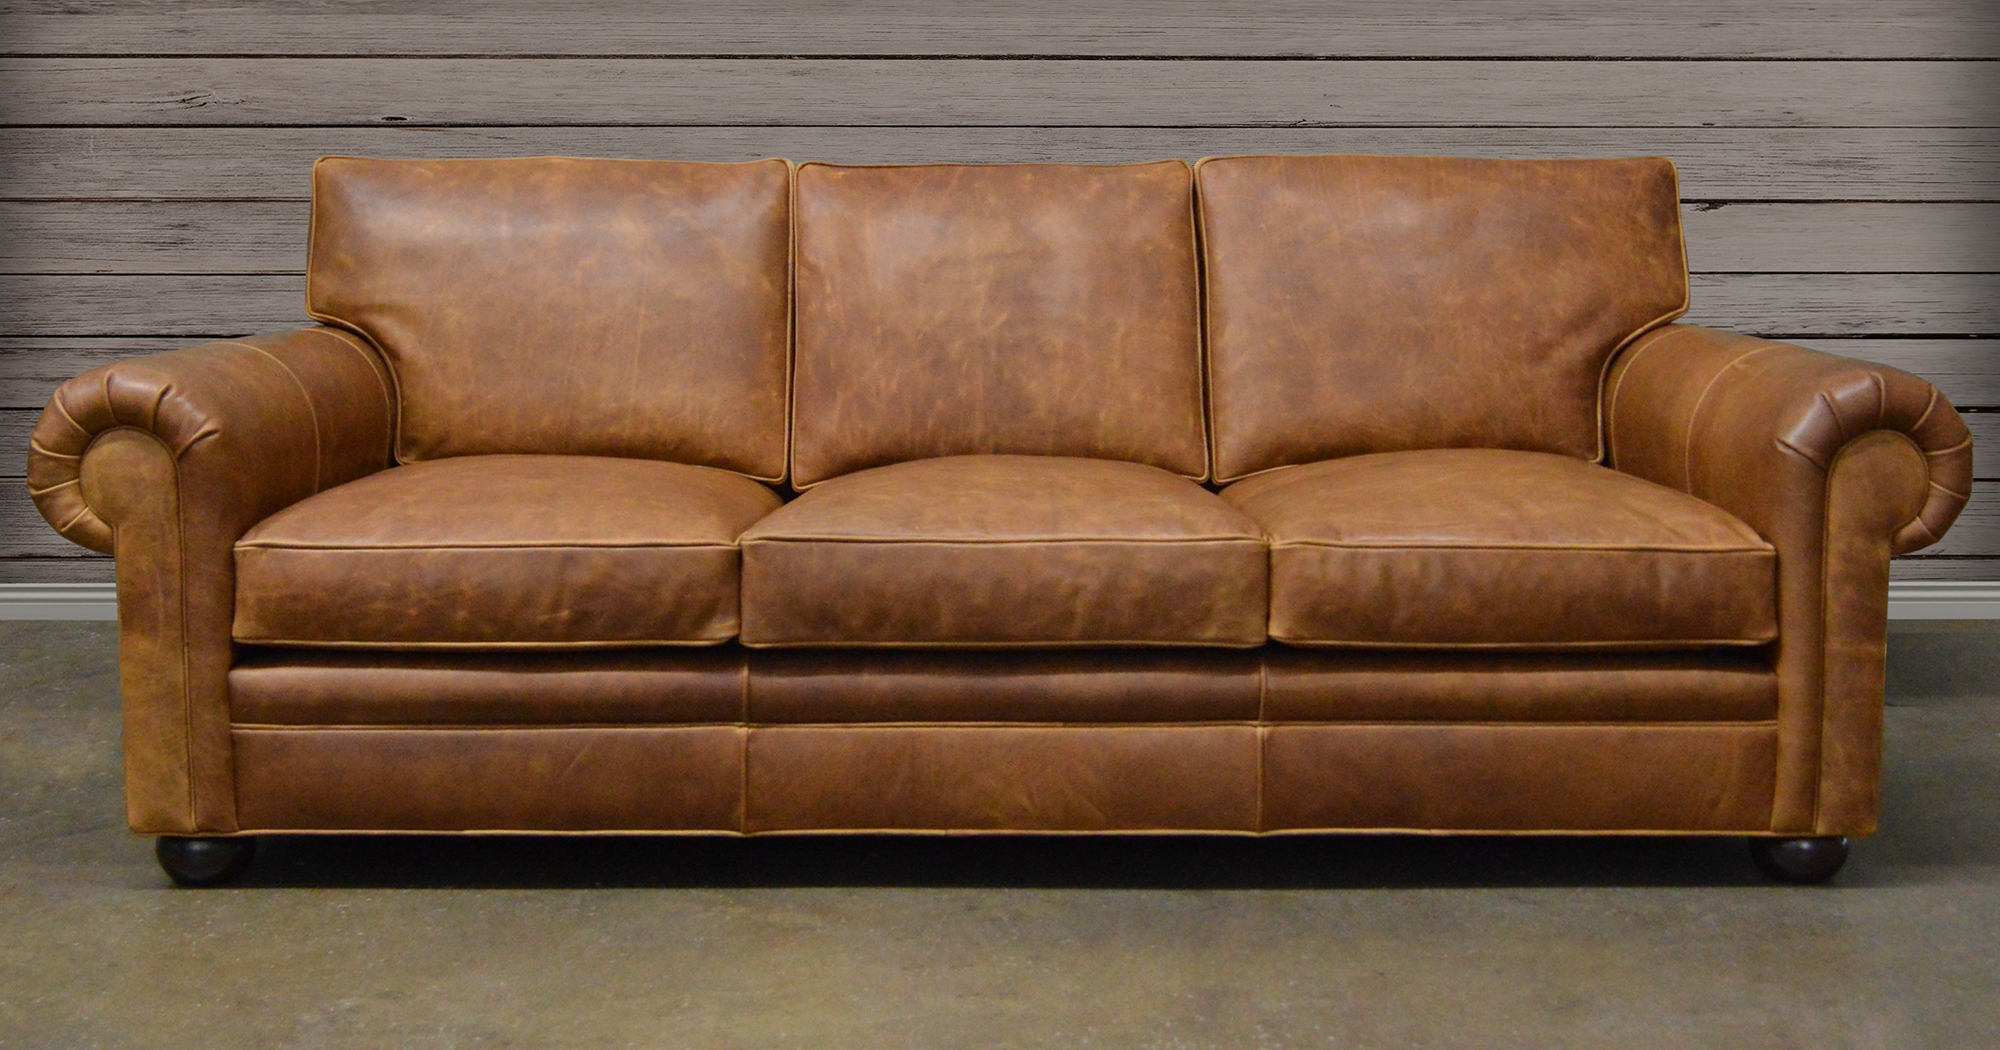 [%Sofa: Concepts Light Brown Leather Sofa 100% Leather Sofas, Ashley Pertaining To Most Current Light Tan Leather Sofas|Light Tan Leather Sofas Pertaining To Recent Sofa: Concepts Light Brown Leather Sofa 100% Leather Sofas, Ashley|Well Liked Light Tan Leather Sofas Throughout Sofa: Concepts Light Brown Leather Sofa 100% Leather Sofas, Ashley|Widely Used Sofa: Concepts Light Brown Leather Sofa 100% Leather Sofas, Ashley Regarding Light Tan Leather Sofas%] (View 1 of 15)